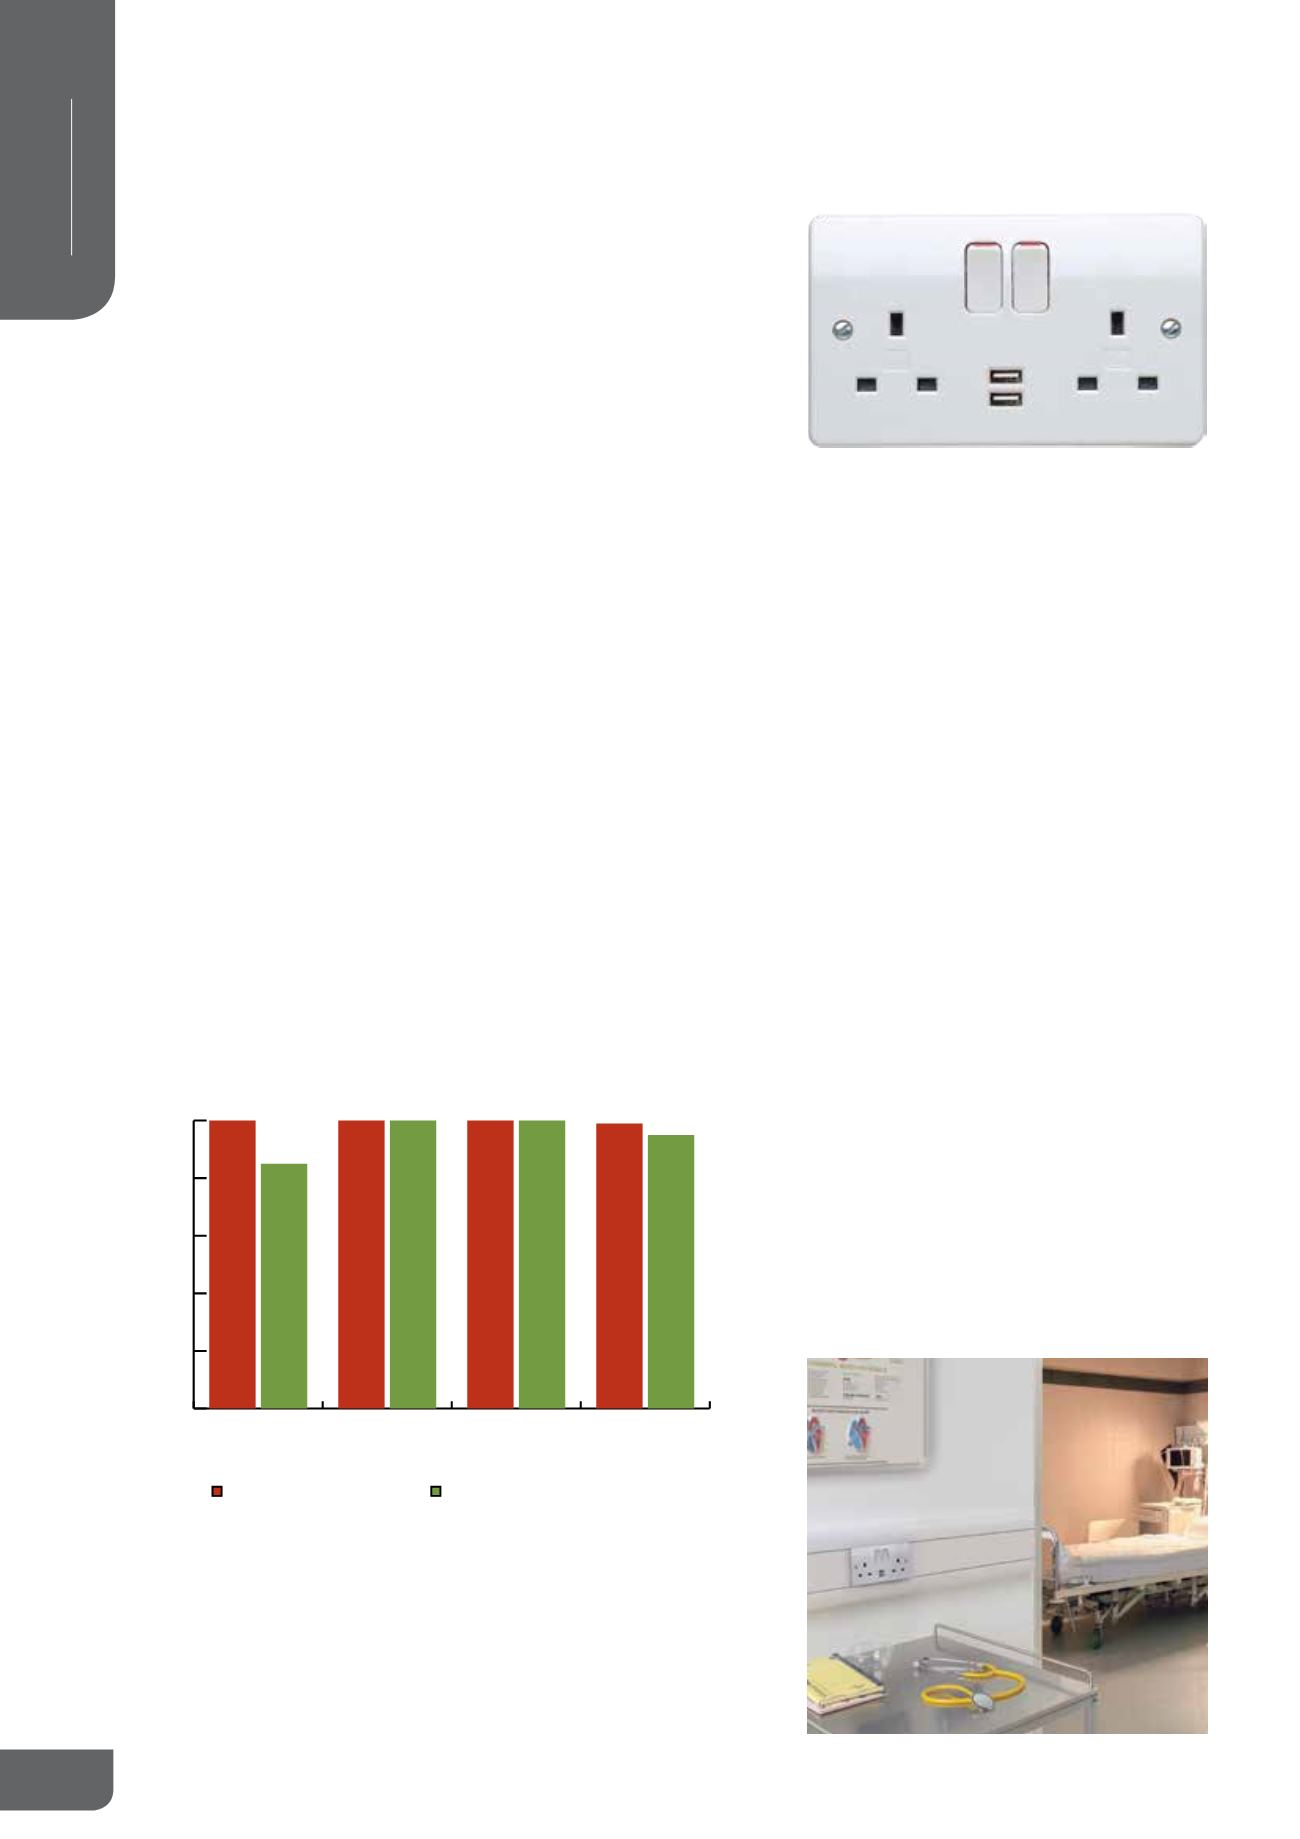 Outstanding Legrand Wiring Accessories Catalogue Pdf Gallery ...